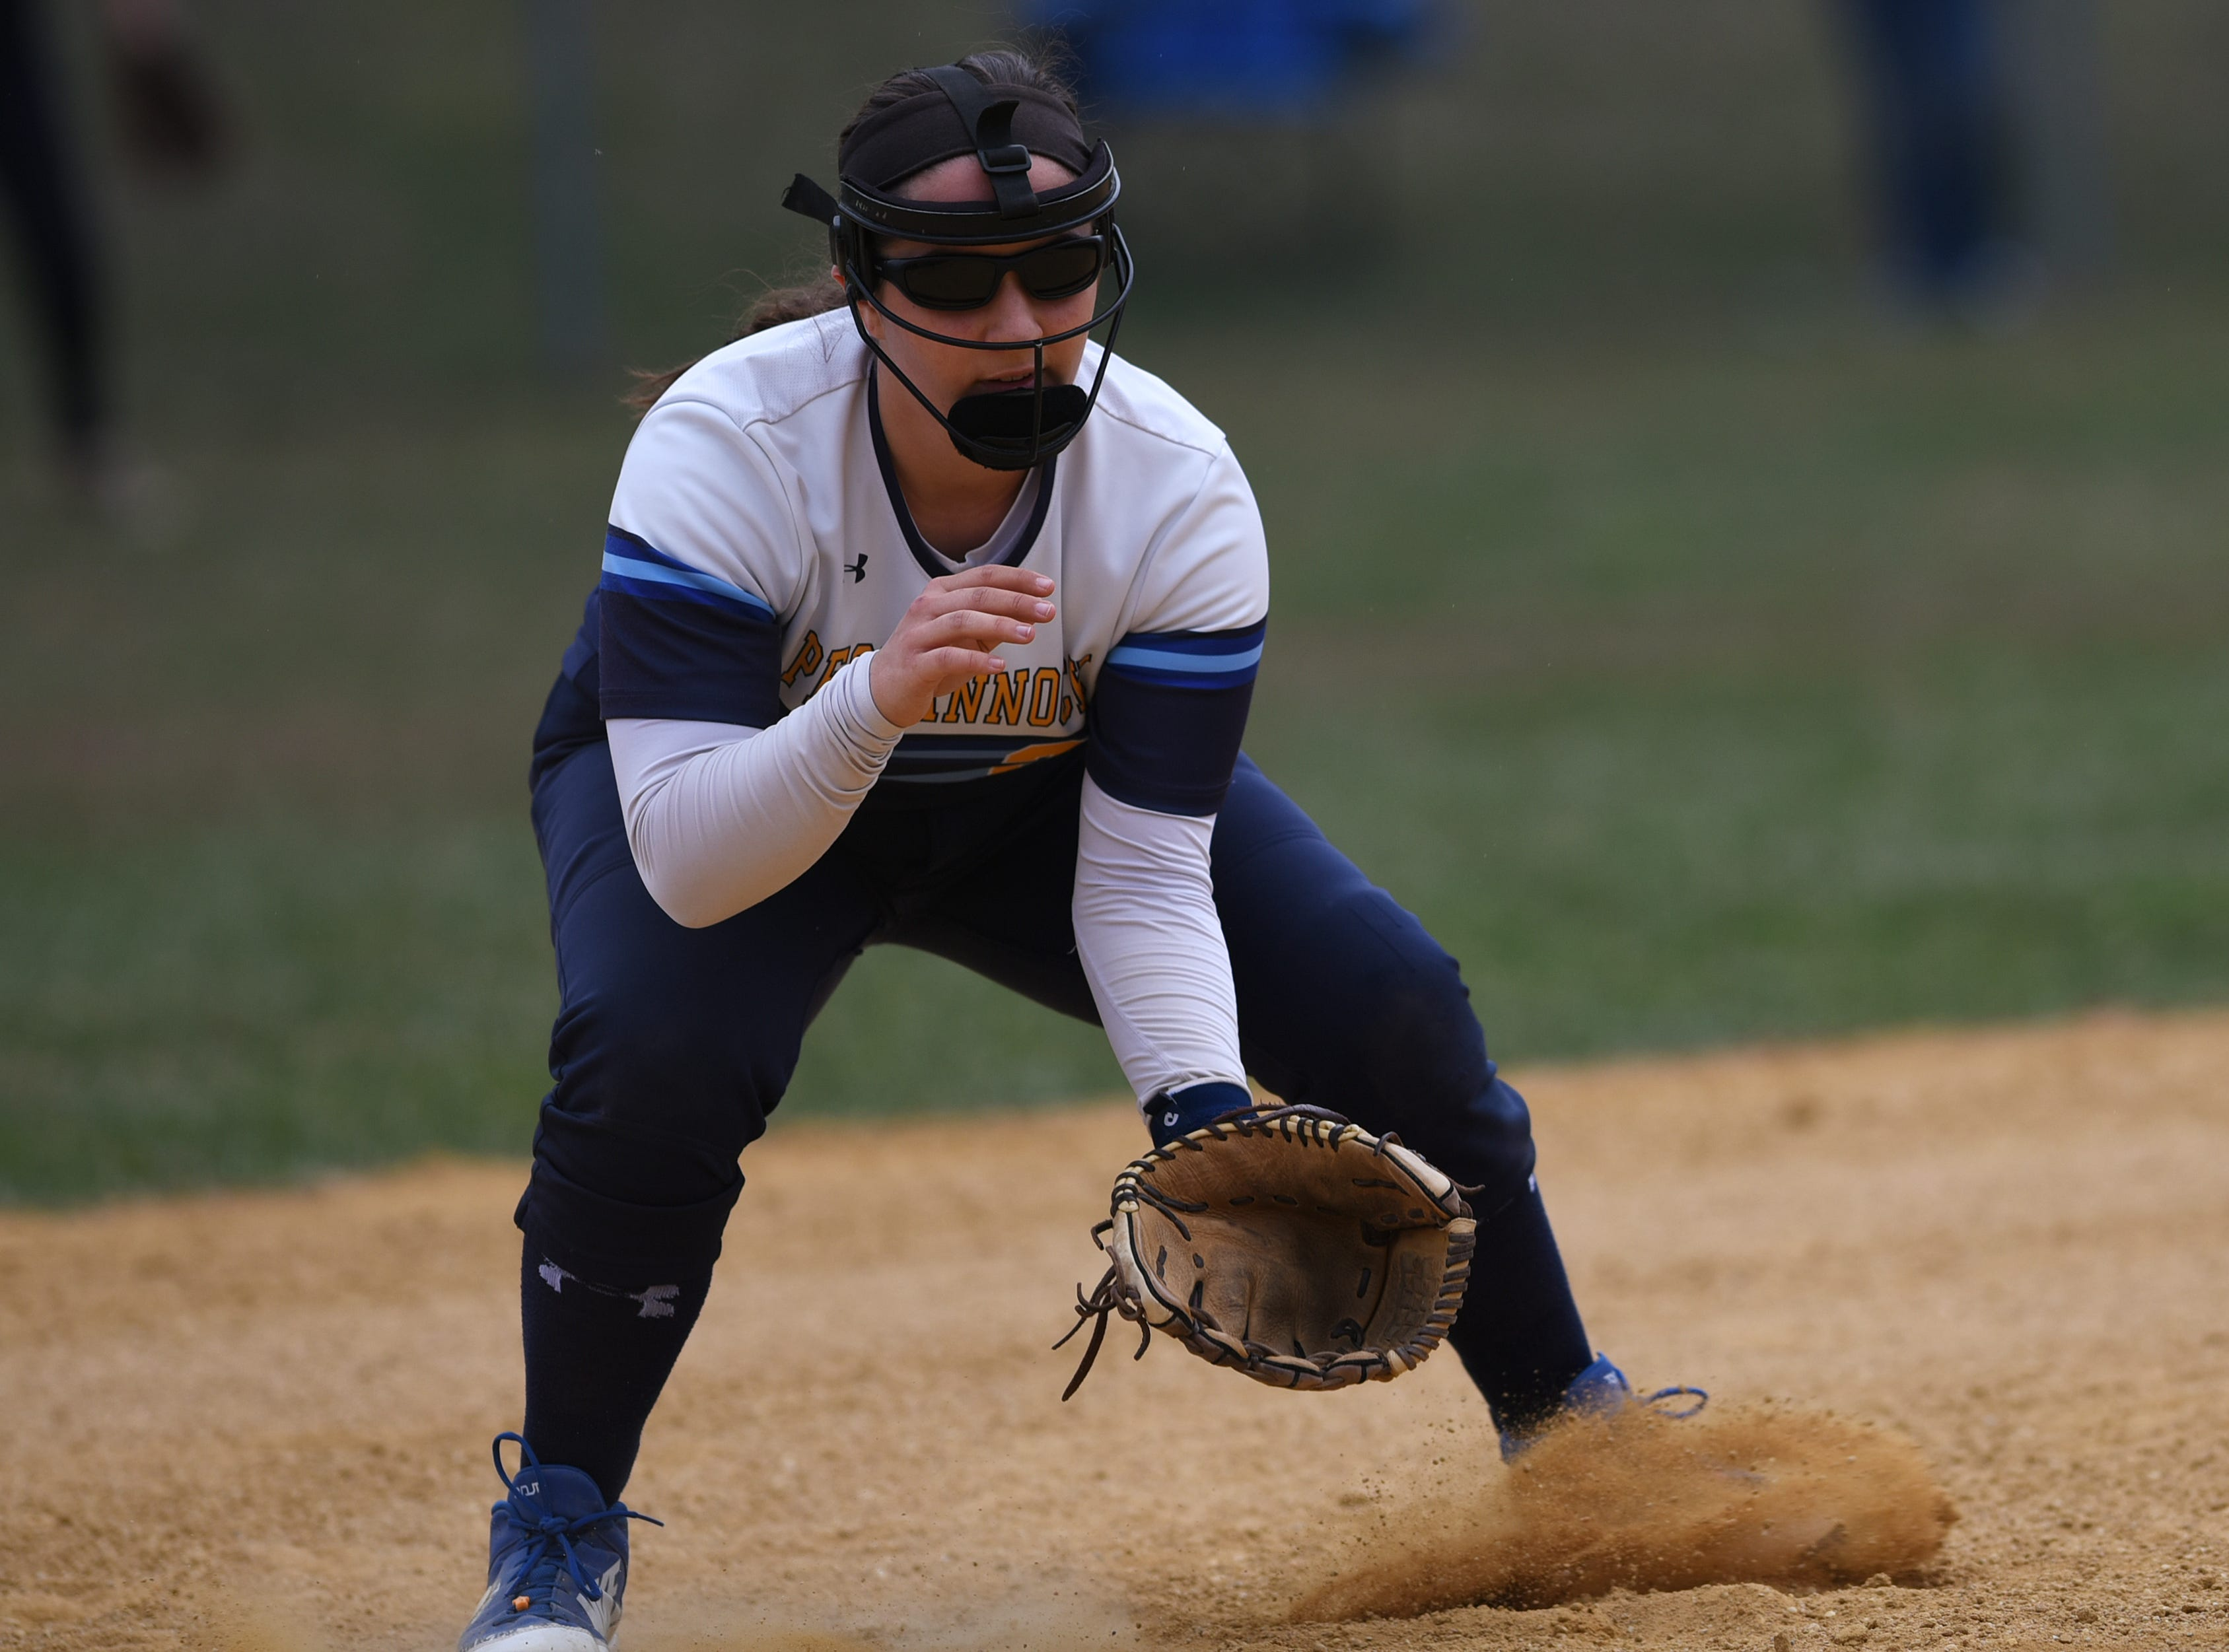 Pequannock at Kinnelon softball game in Kinnelon on Friday April 12, 2019. P#28 Shannon Wall crouches near third base.